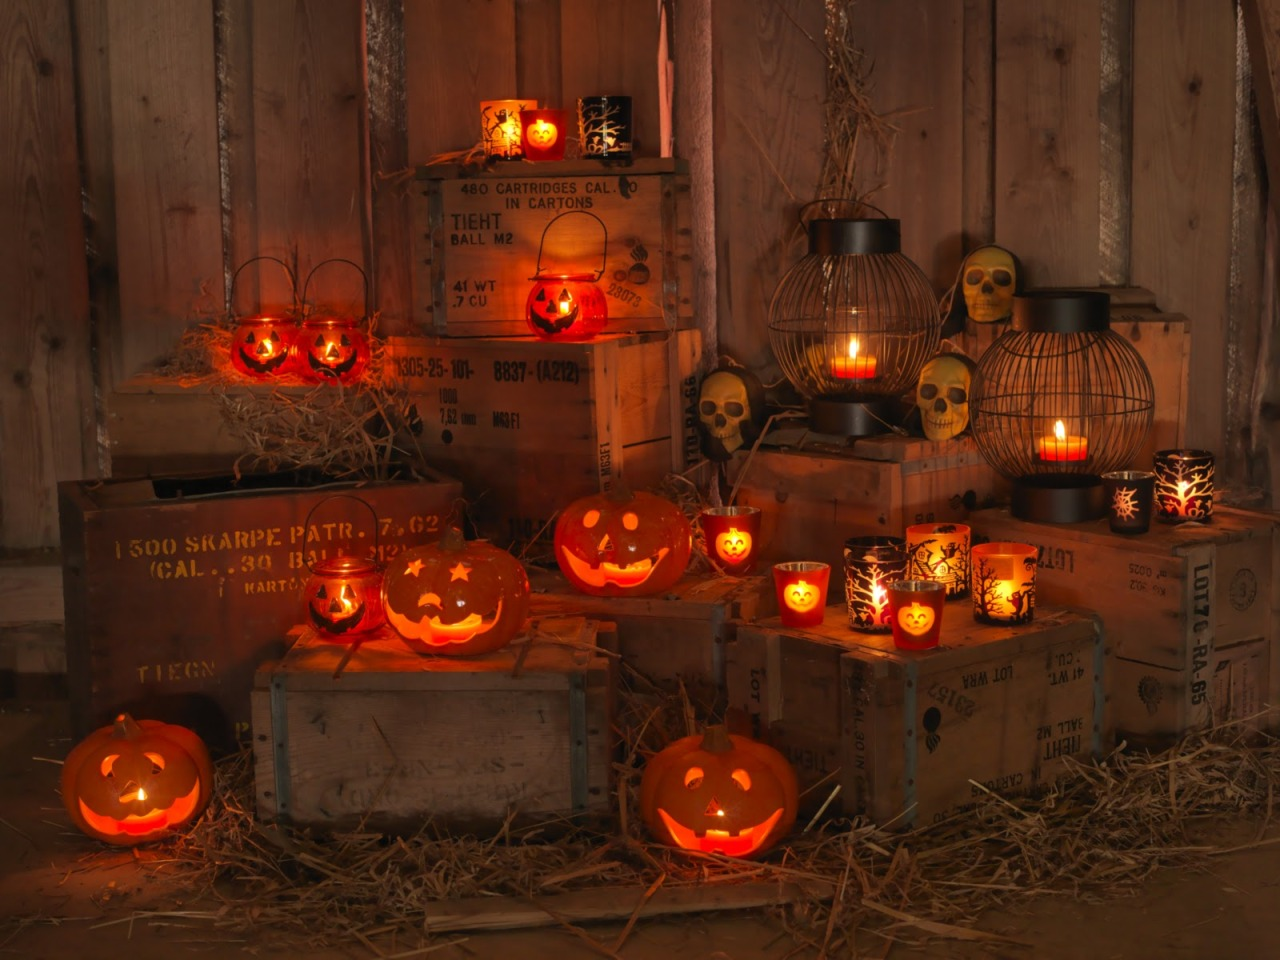 Skulls Mine Halloween Lanterns Fall Autumn October Jack O